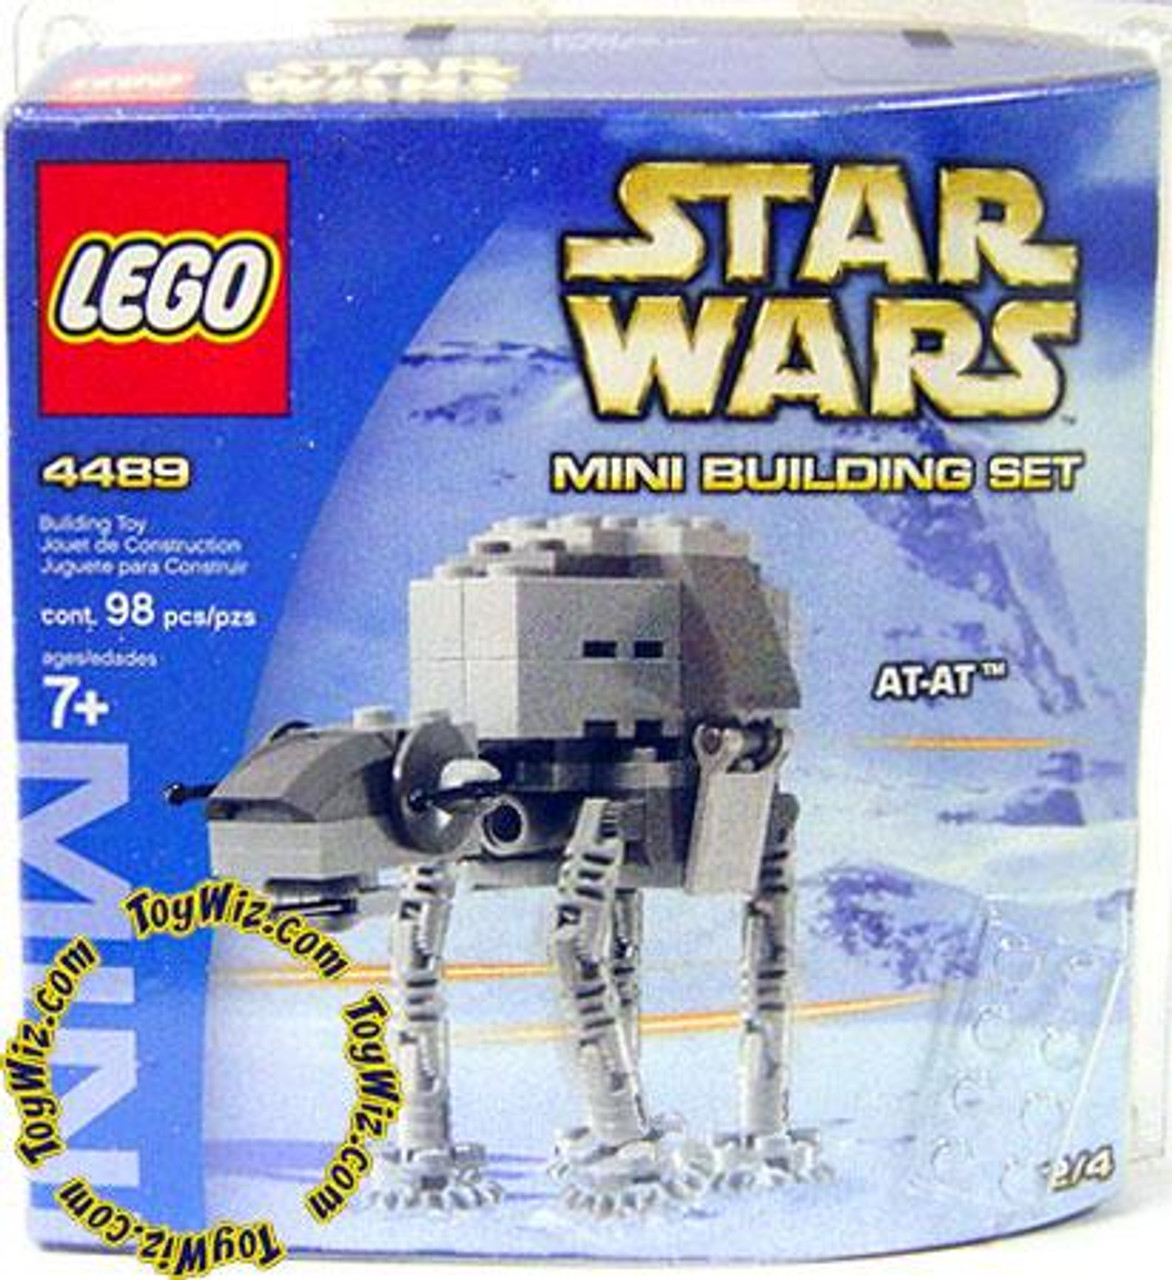 LEGO Star Wars Empire Strikes Back Mini Building Sets AT-AT Set #4489